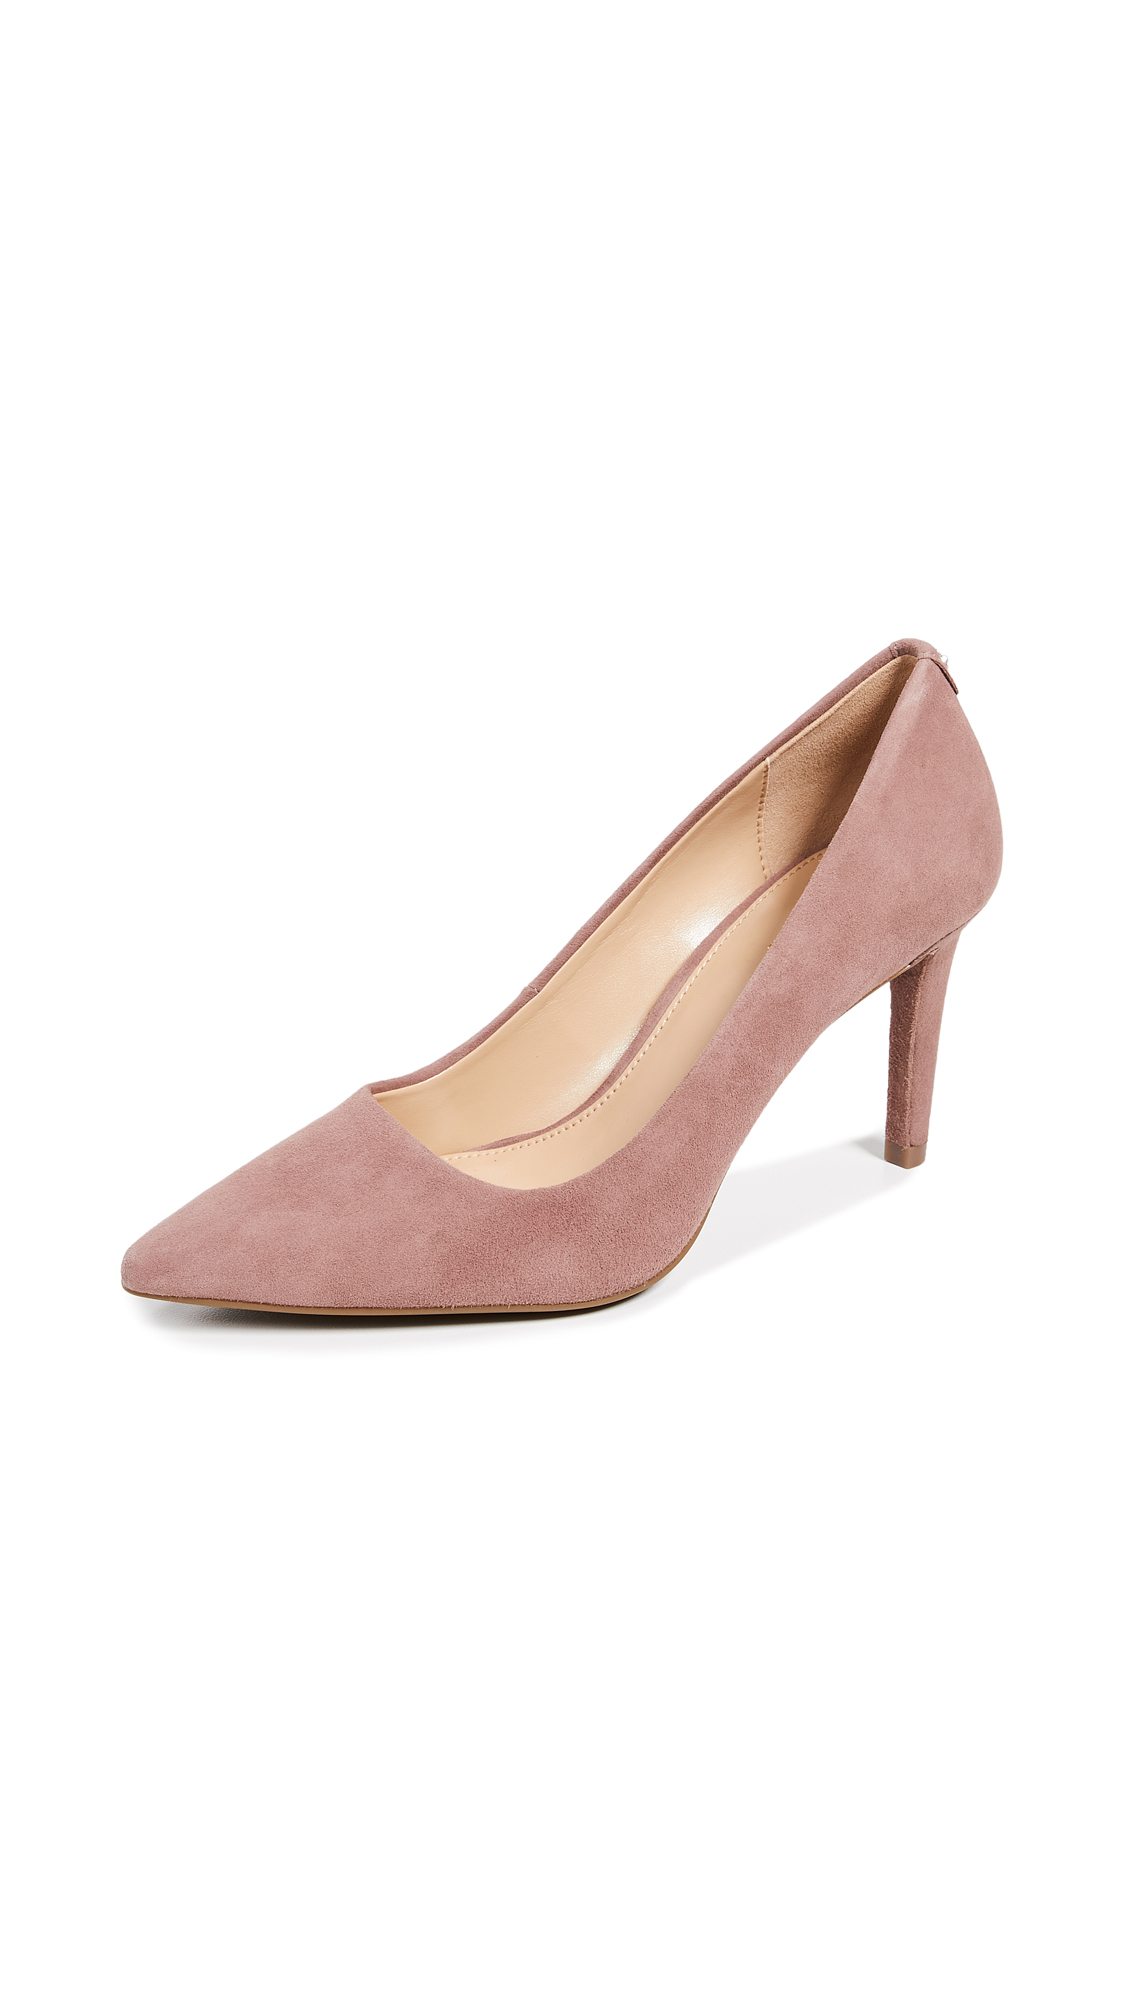 MICHAEL Michael Kors Dorothy Flex Pumps - Dusty Rose